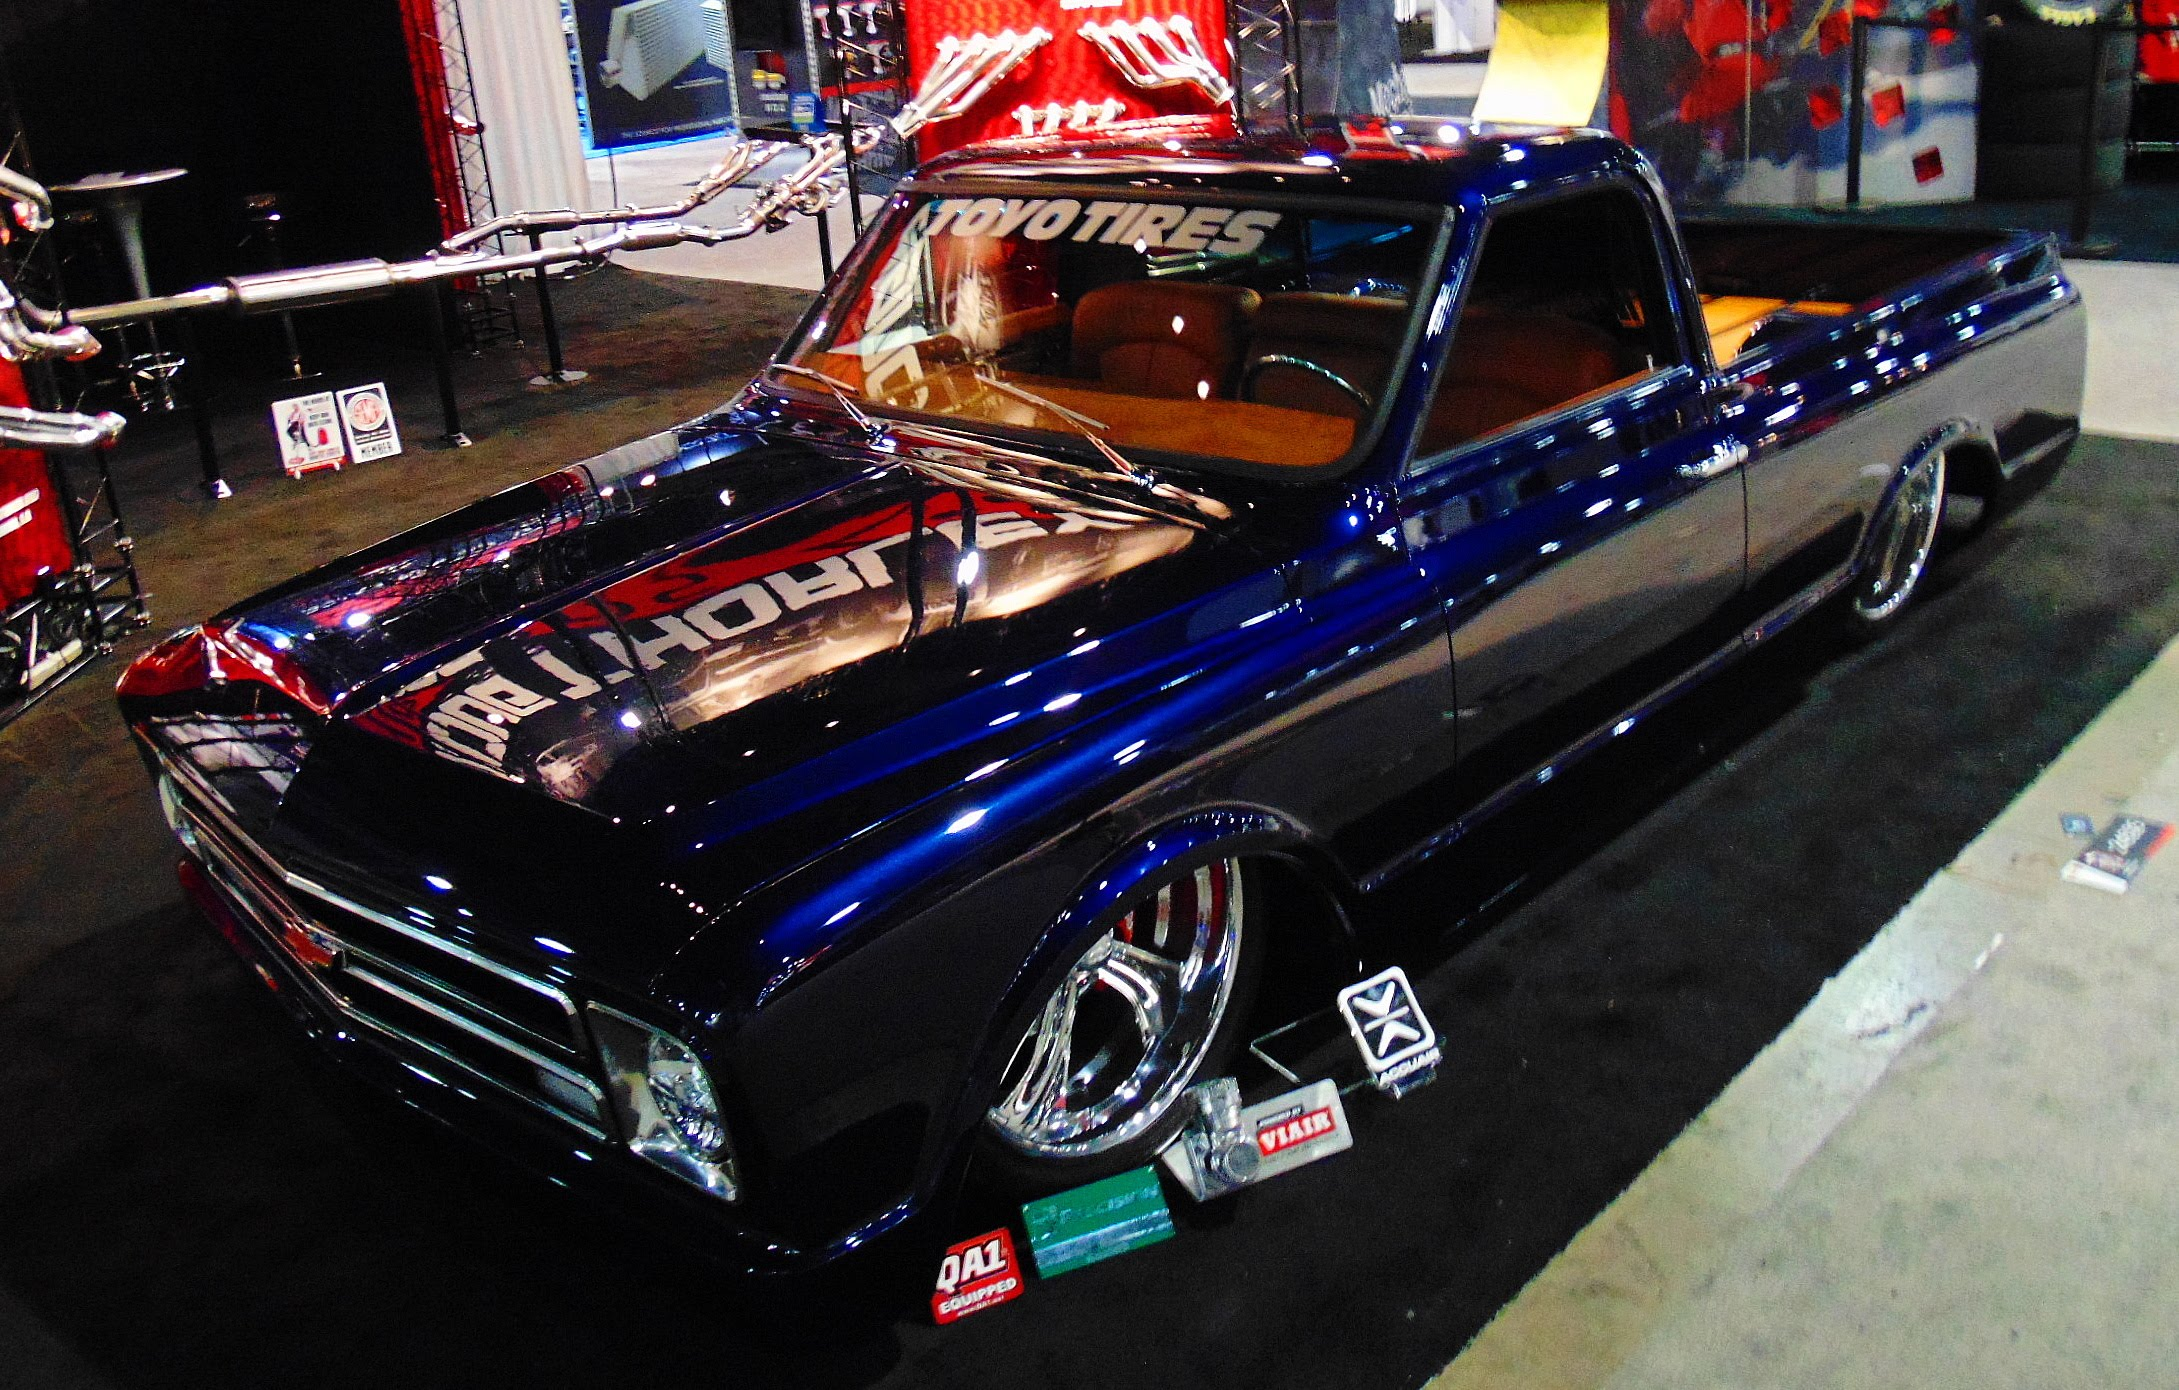 chevy c 10 street truck sema 2015 scottiedtv coolest cars on the web. Black Bedroom Furniture Sets. Home Design Ideas